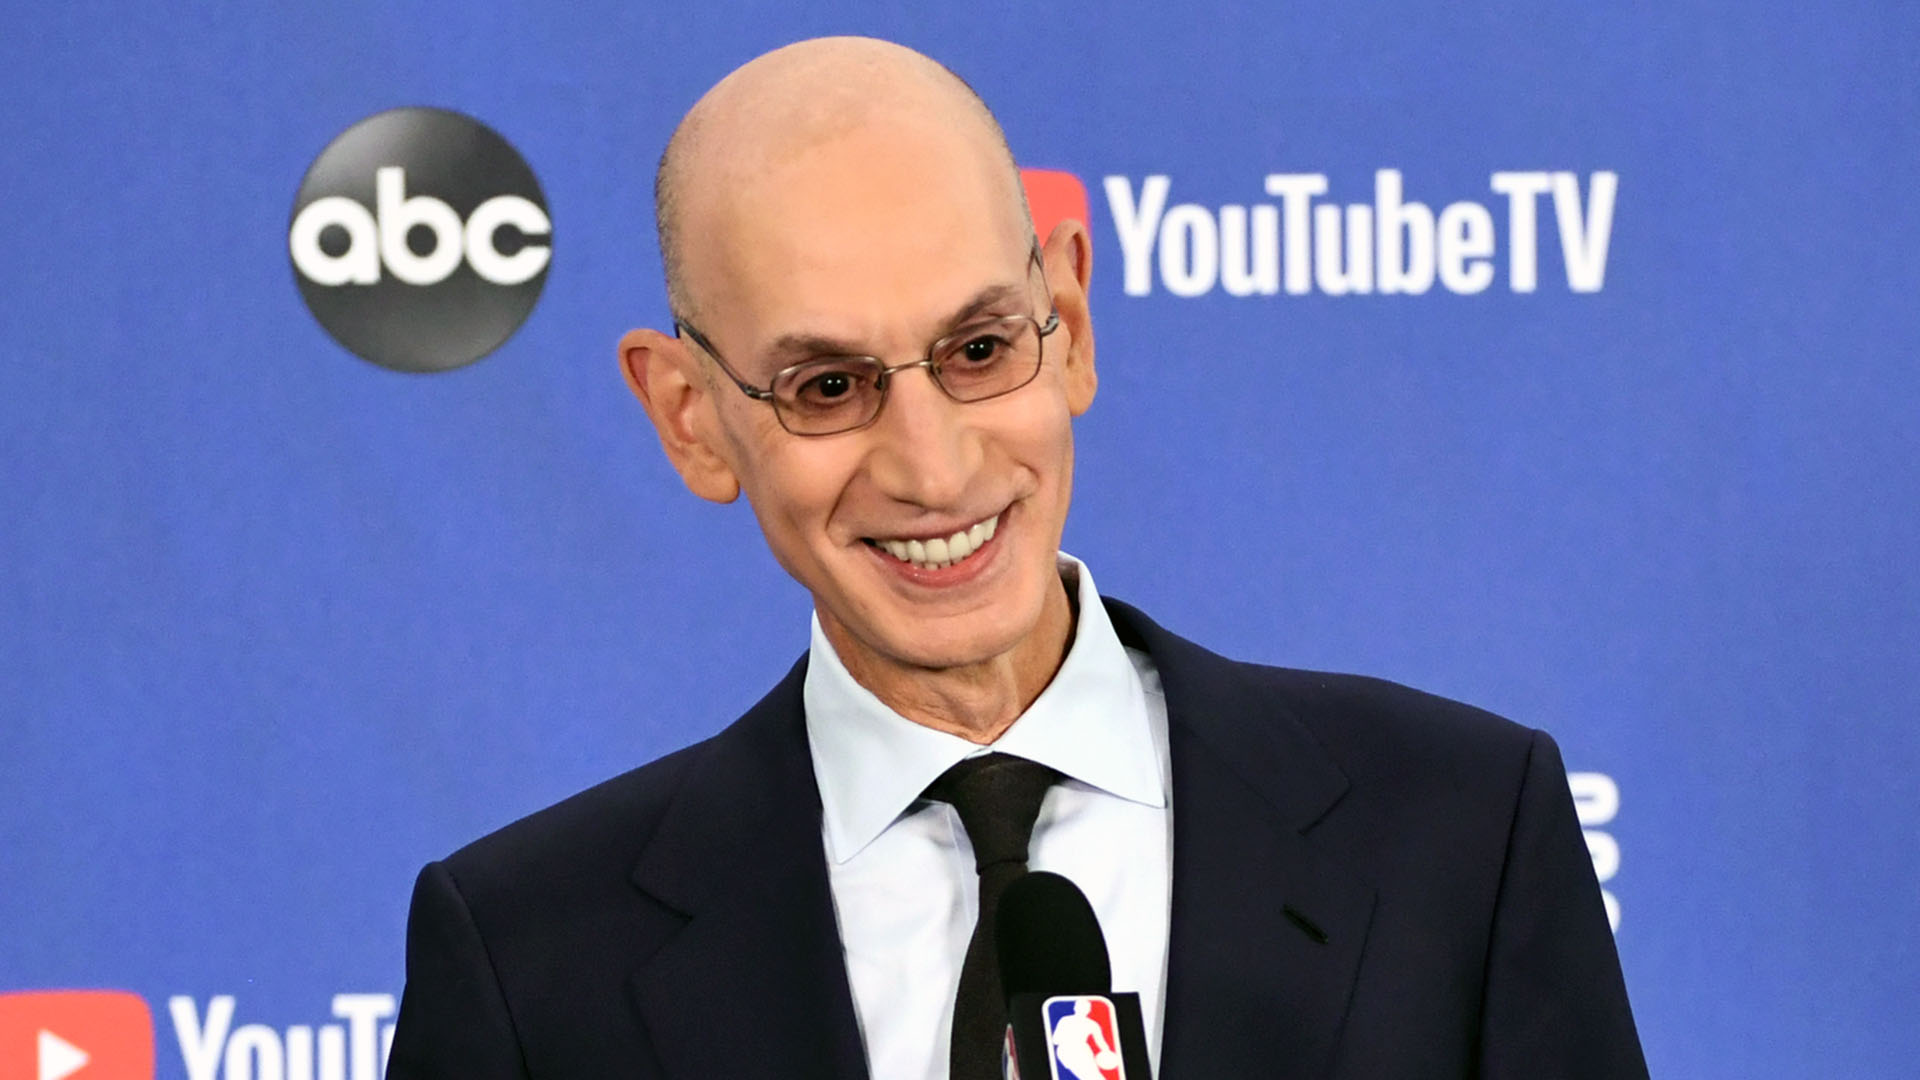 Commissioner Adam Silver 'thrilled' for normalcy as NBA's 75th season begins